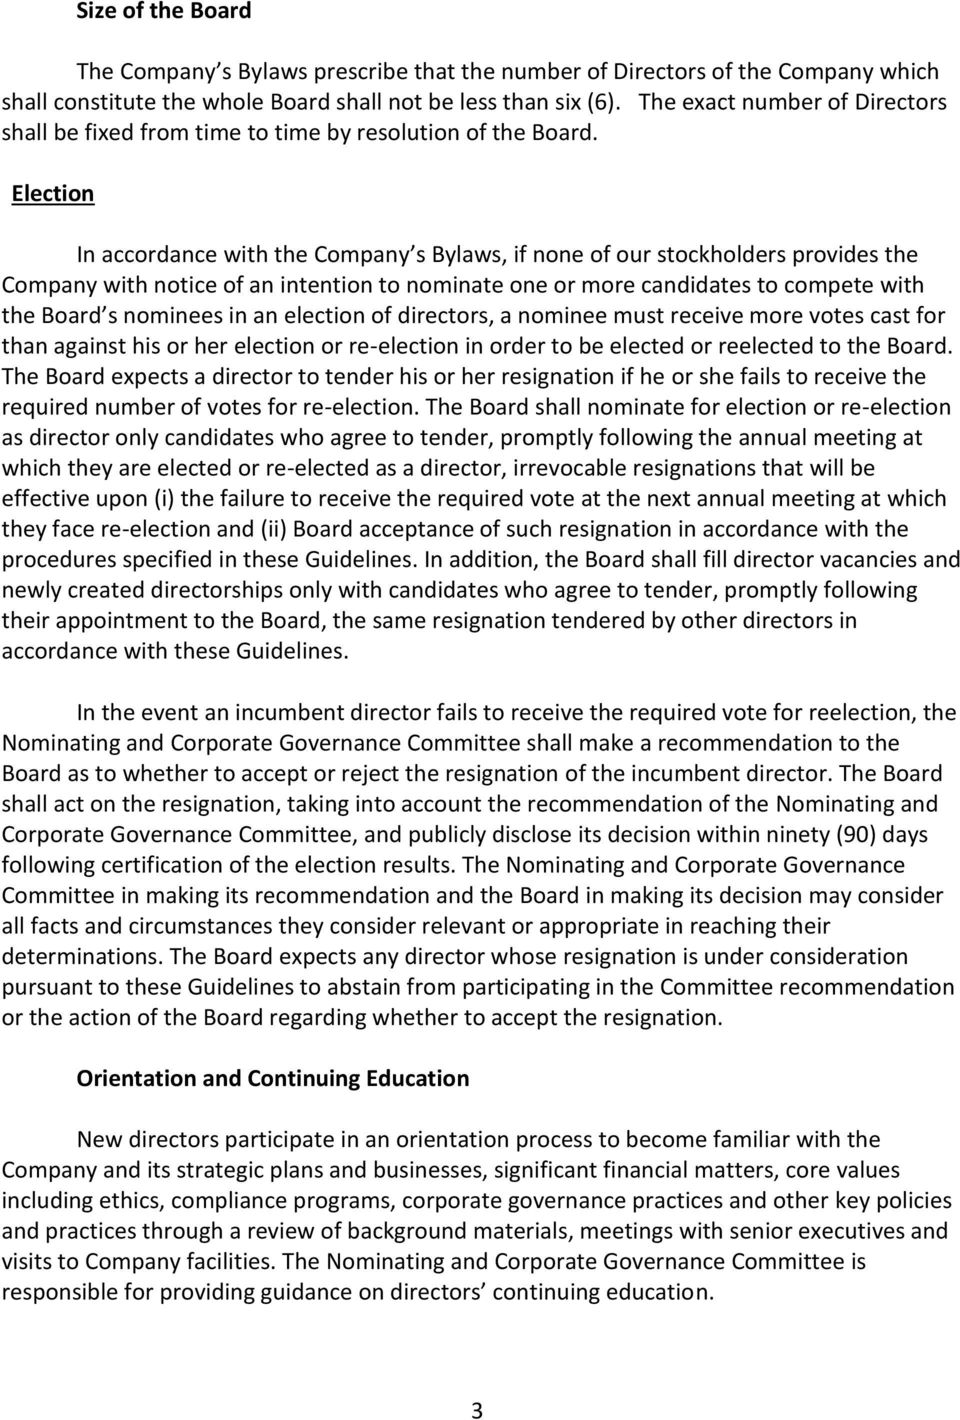 Election In accordance with the Company s Bylaws, if none of our stockholders provides the Company with notice of an intention to nominate one or more candidates to compete with the Board s nominees